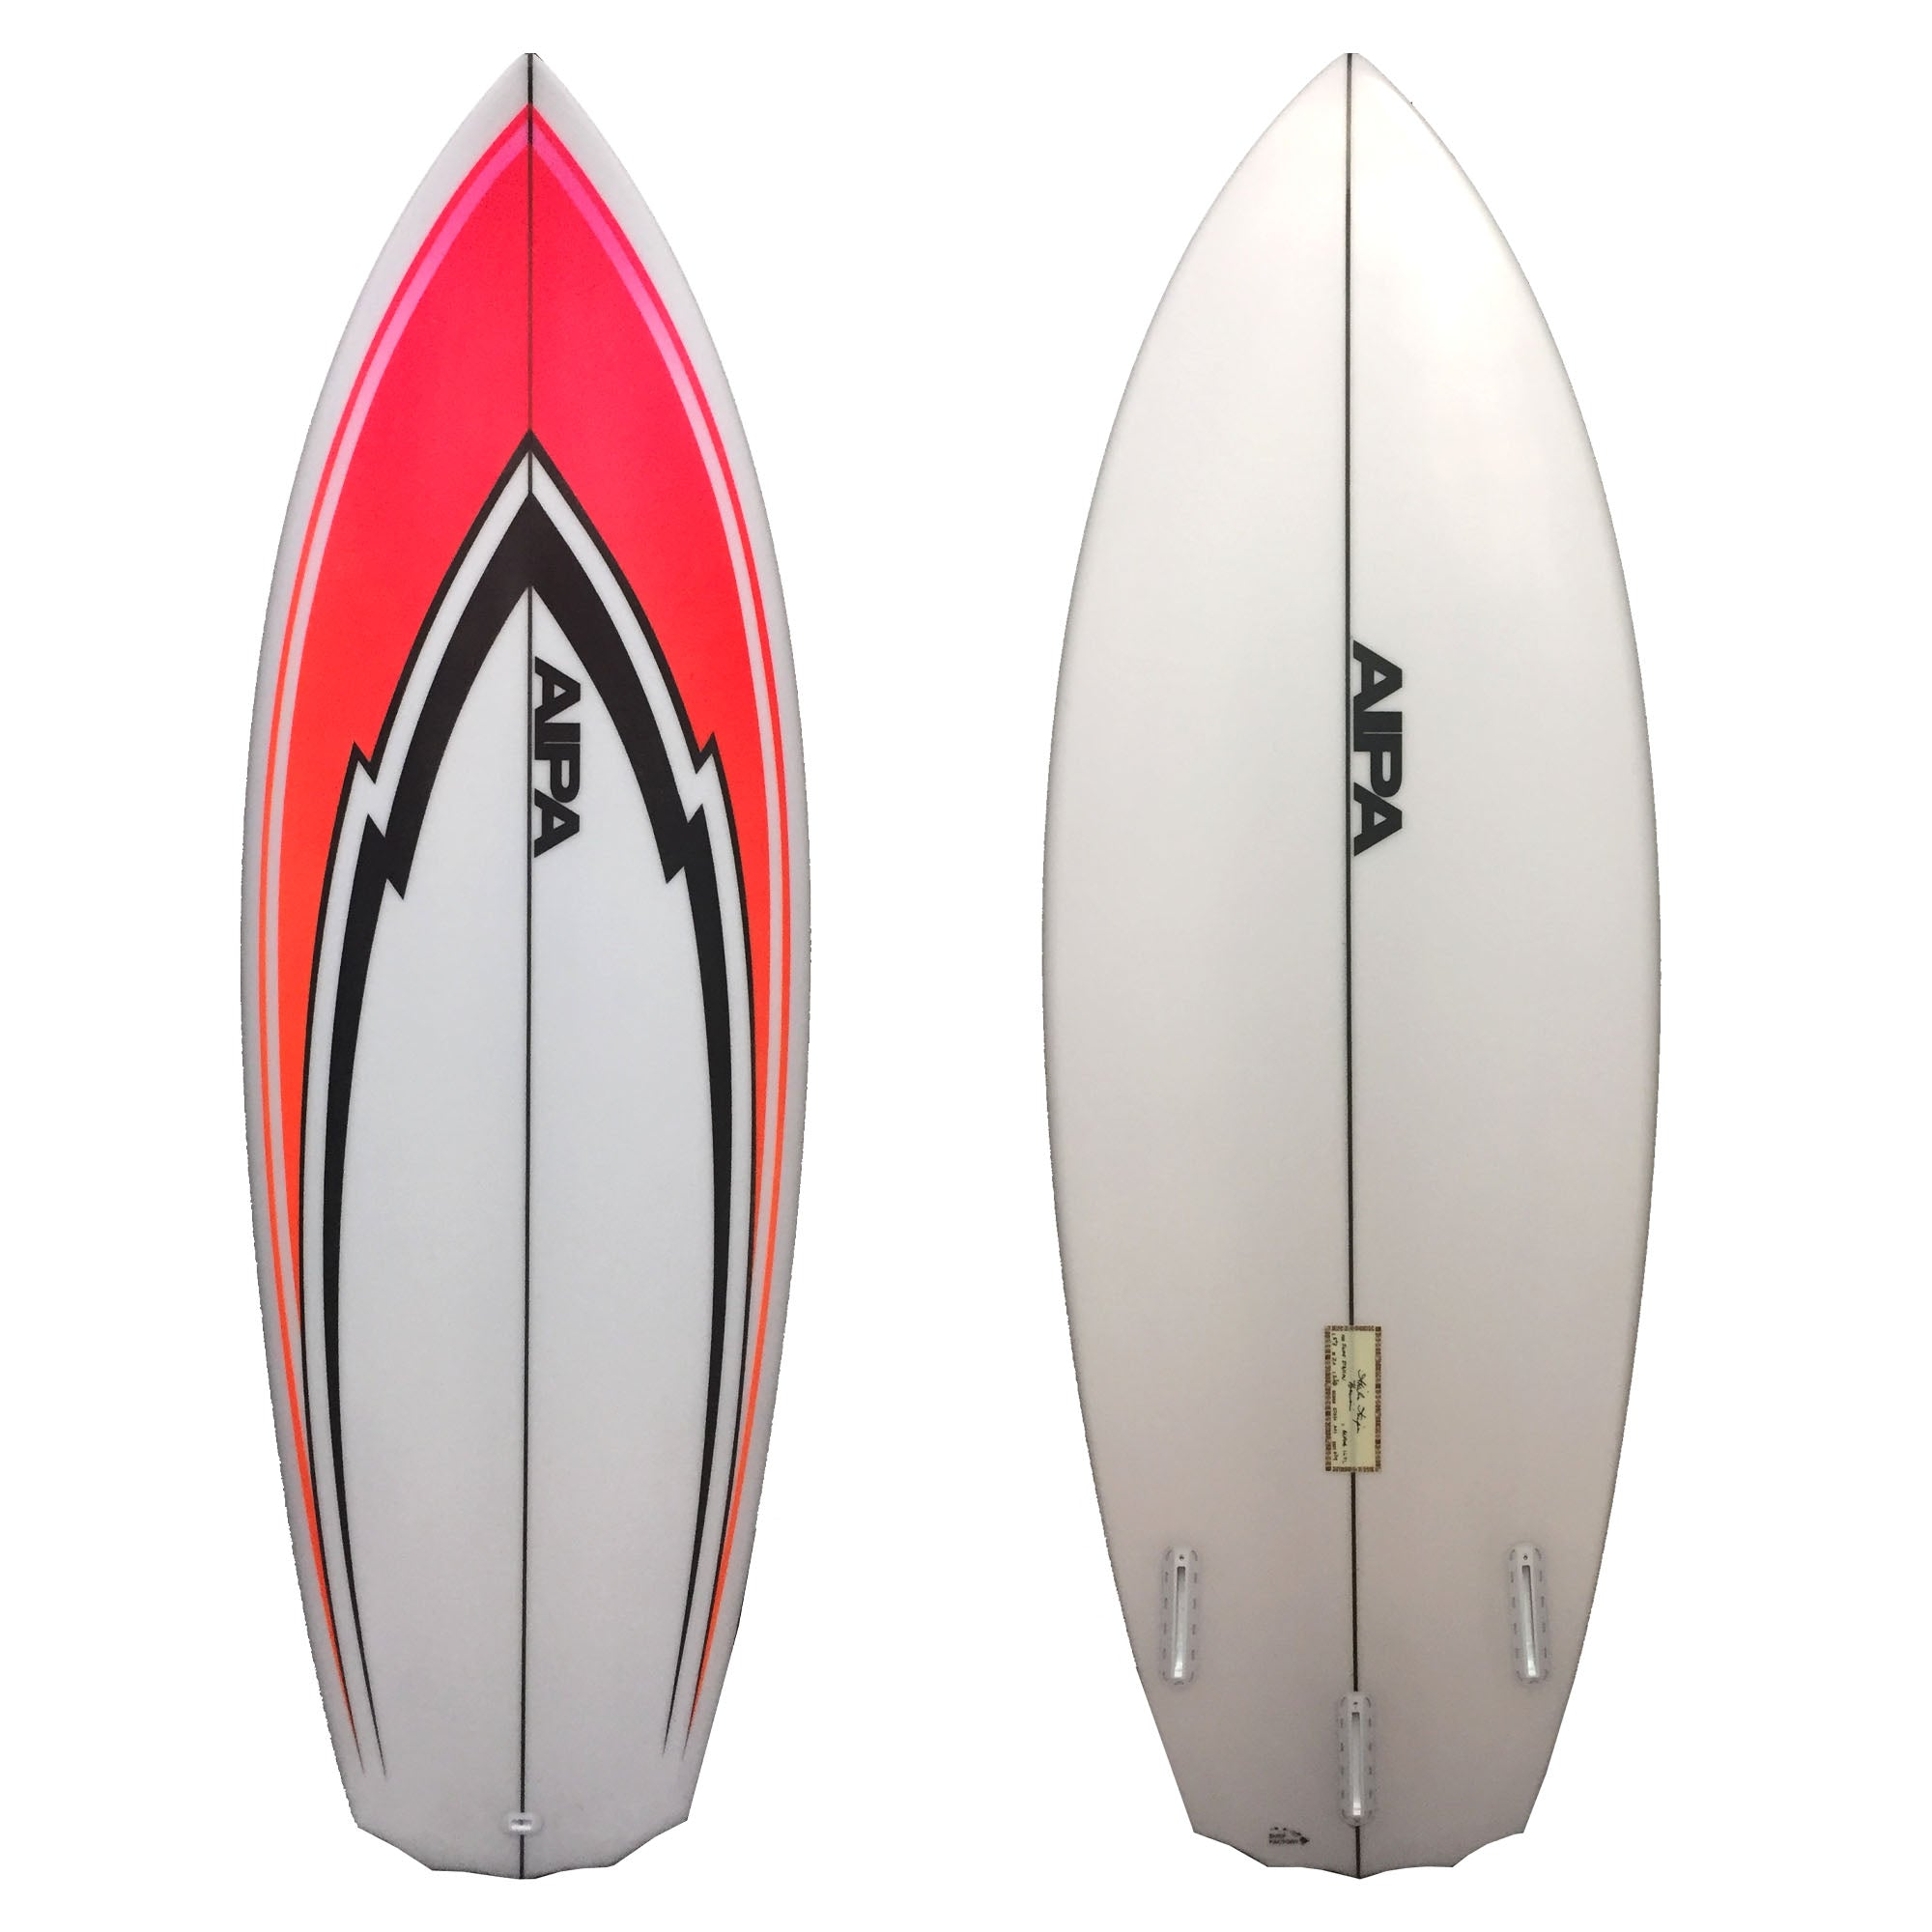 Aipa Fish 2+1 Surfboard